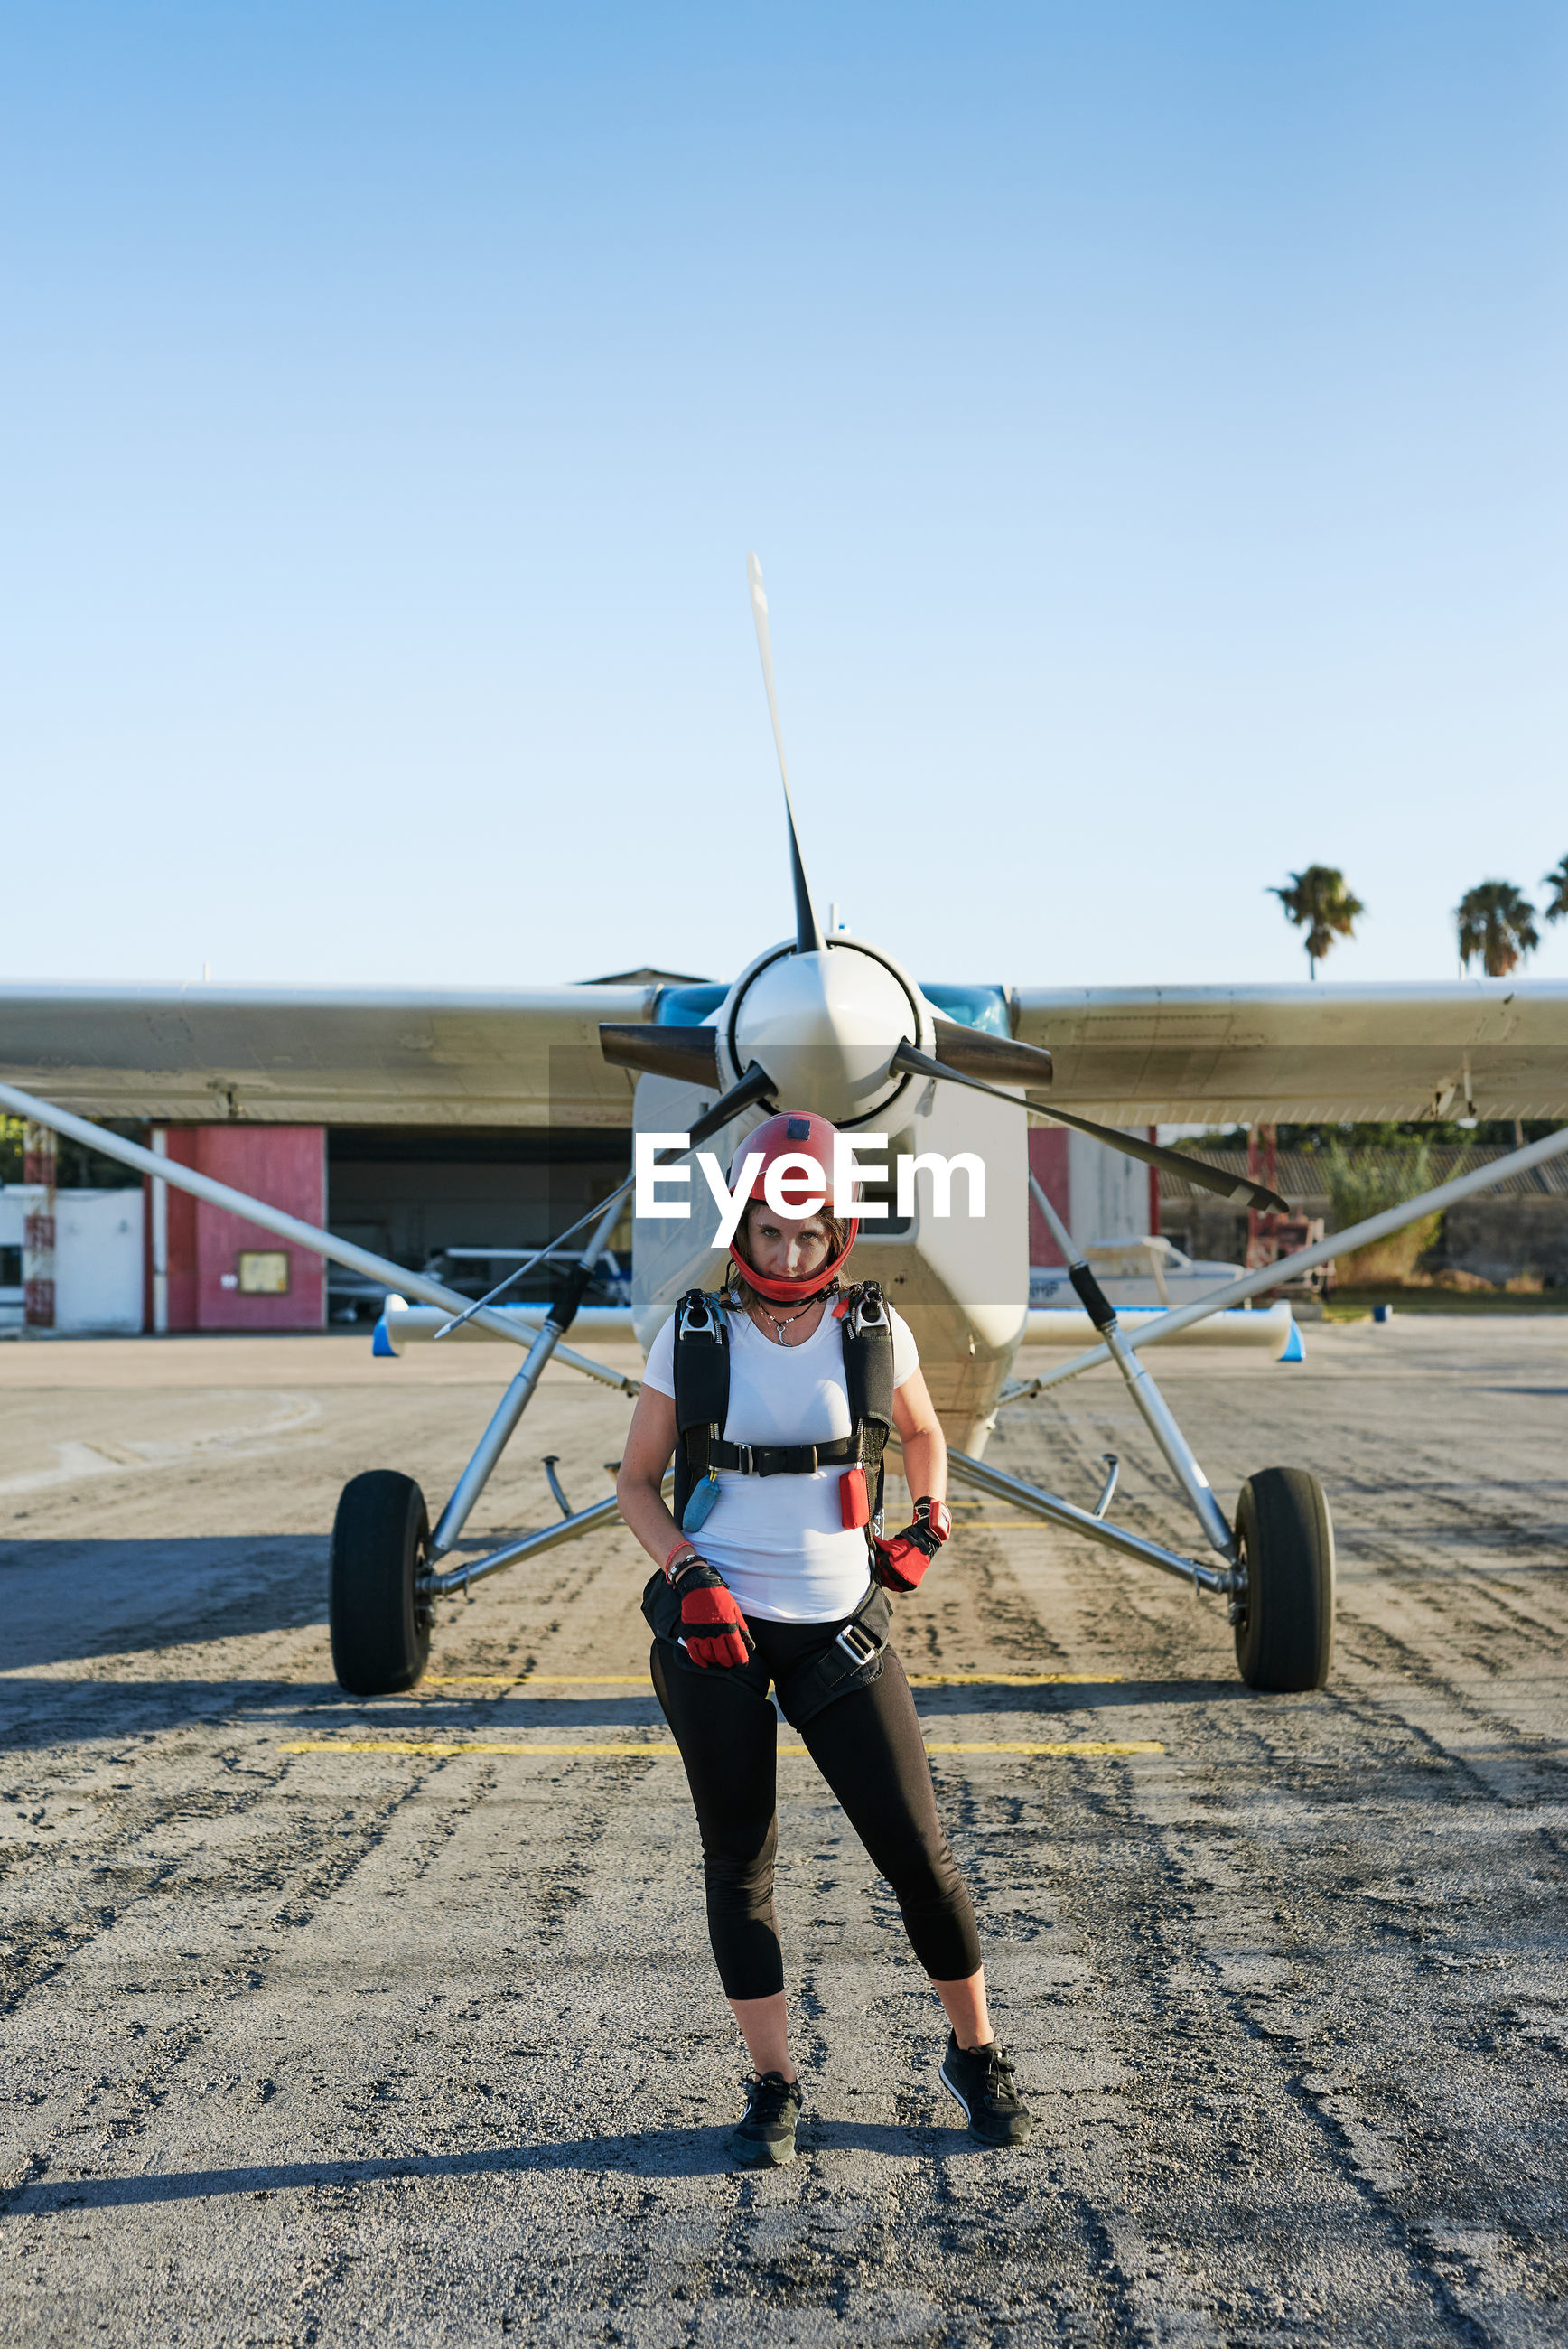 BOY STANDING ON AIRPLANE AGAINST AIRPORT RUNWAY AGAINST CLEAR SKY